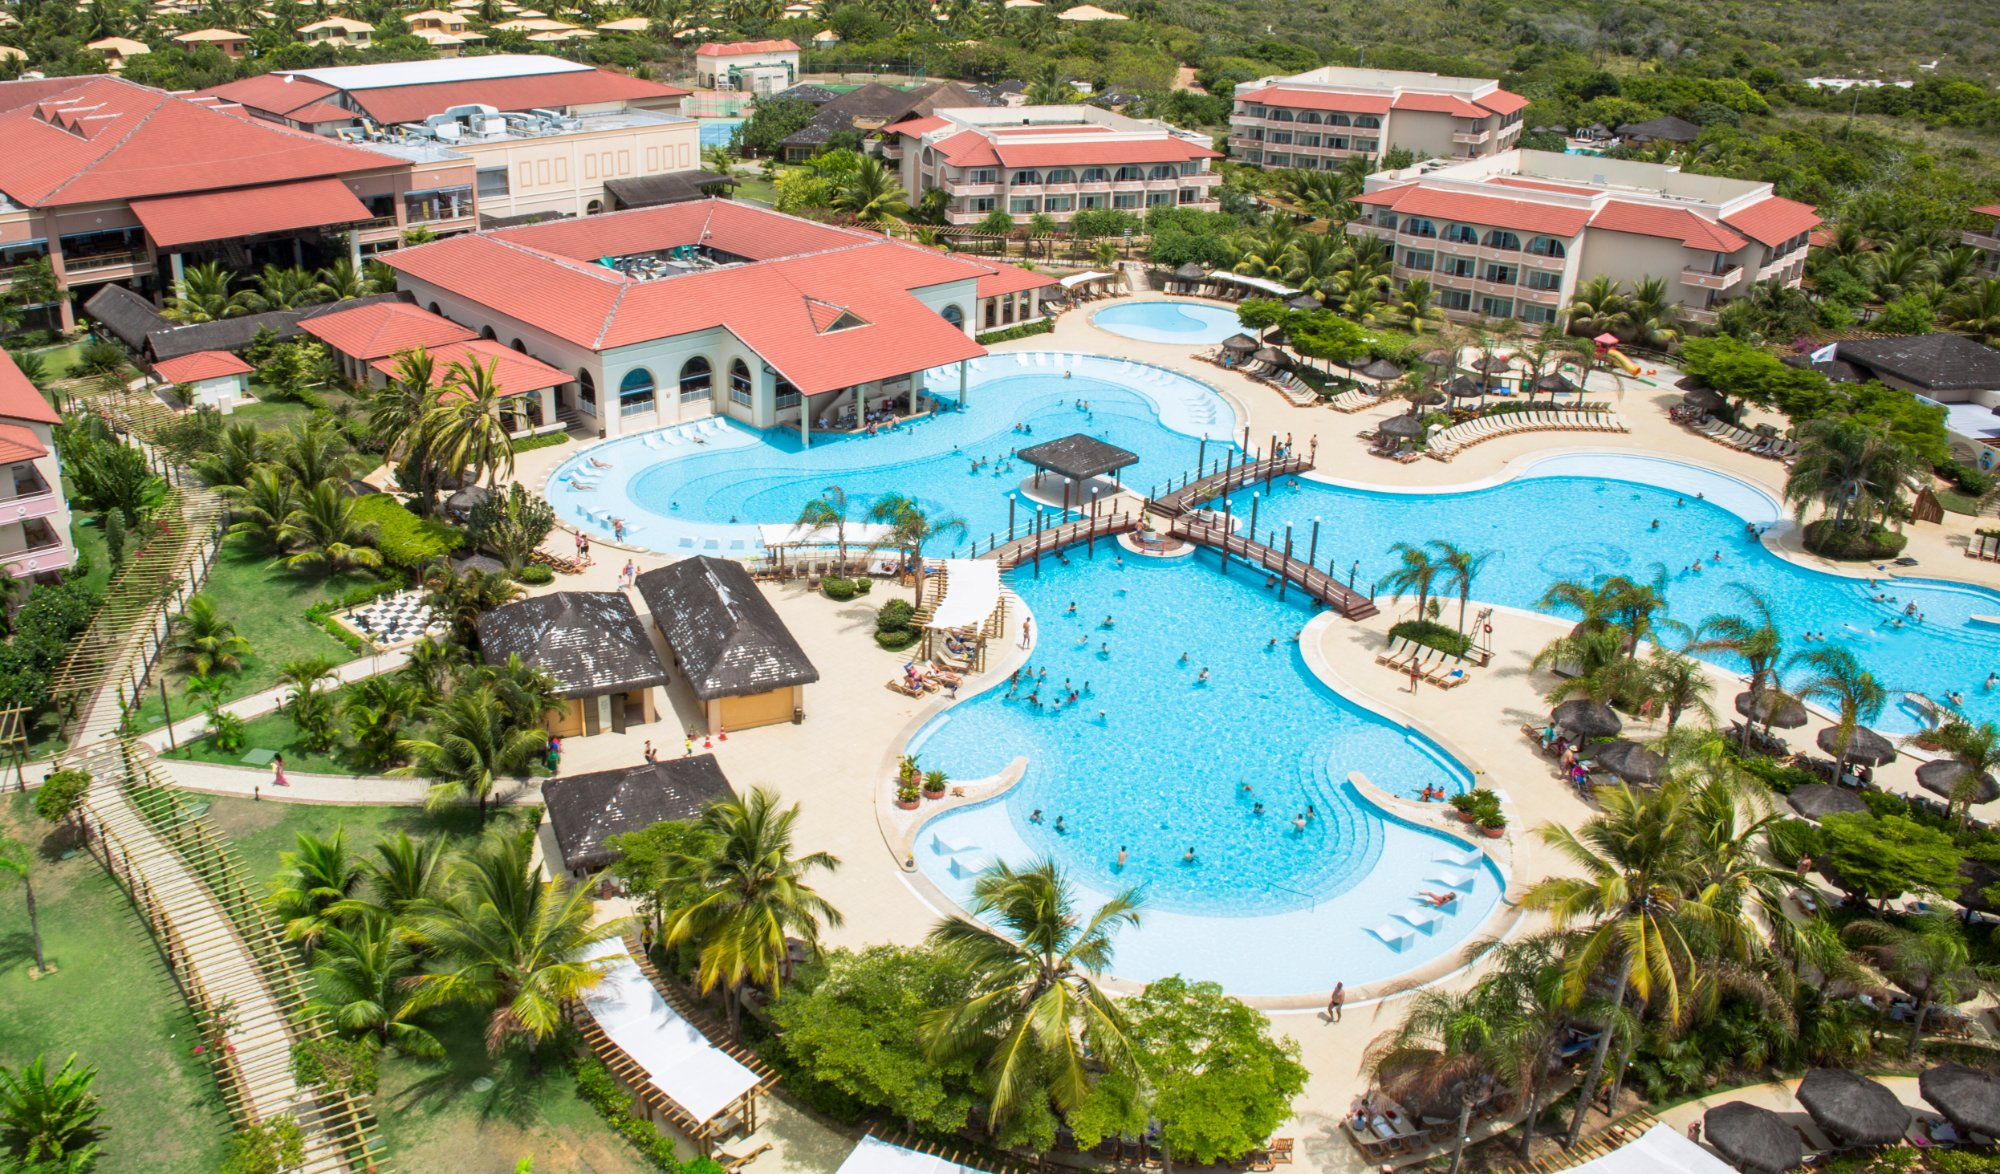 Grand Palladium Imbassaí Resort & Spa